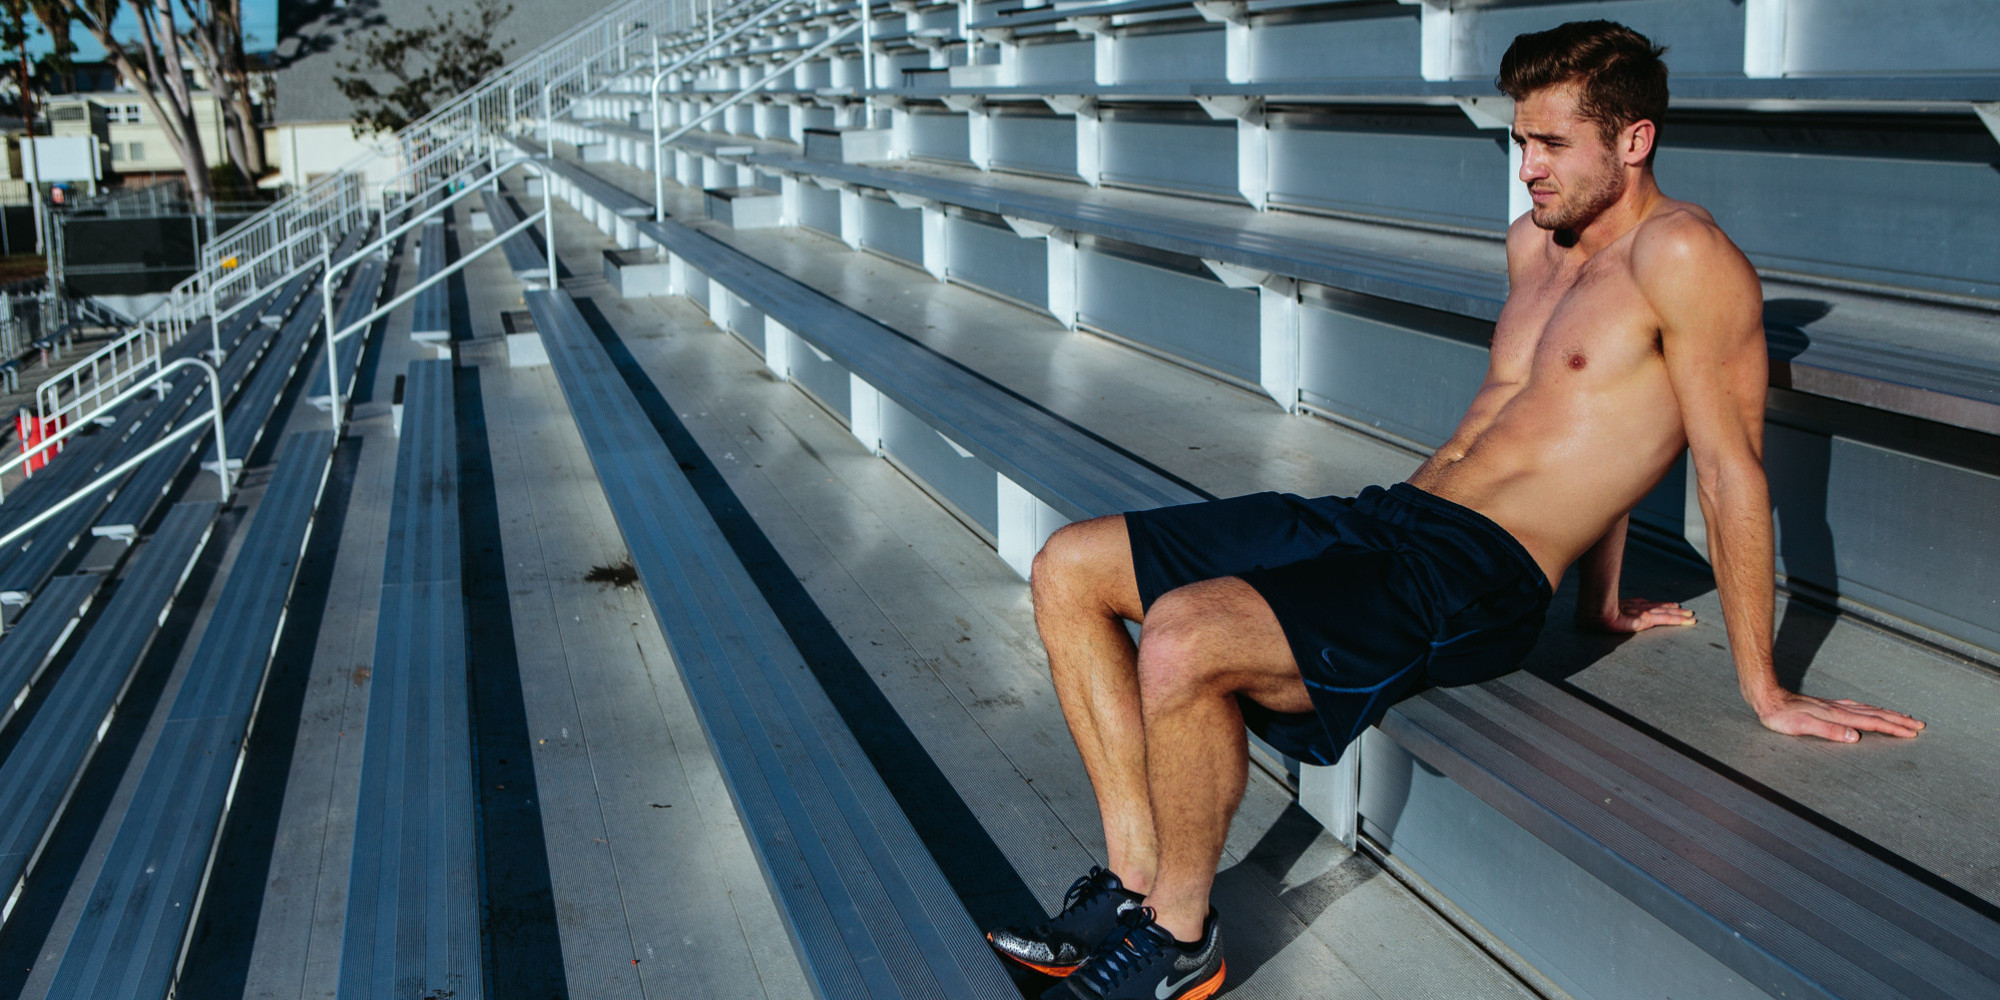 Robbie rogers shares pre season workout tips with out magazine the